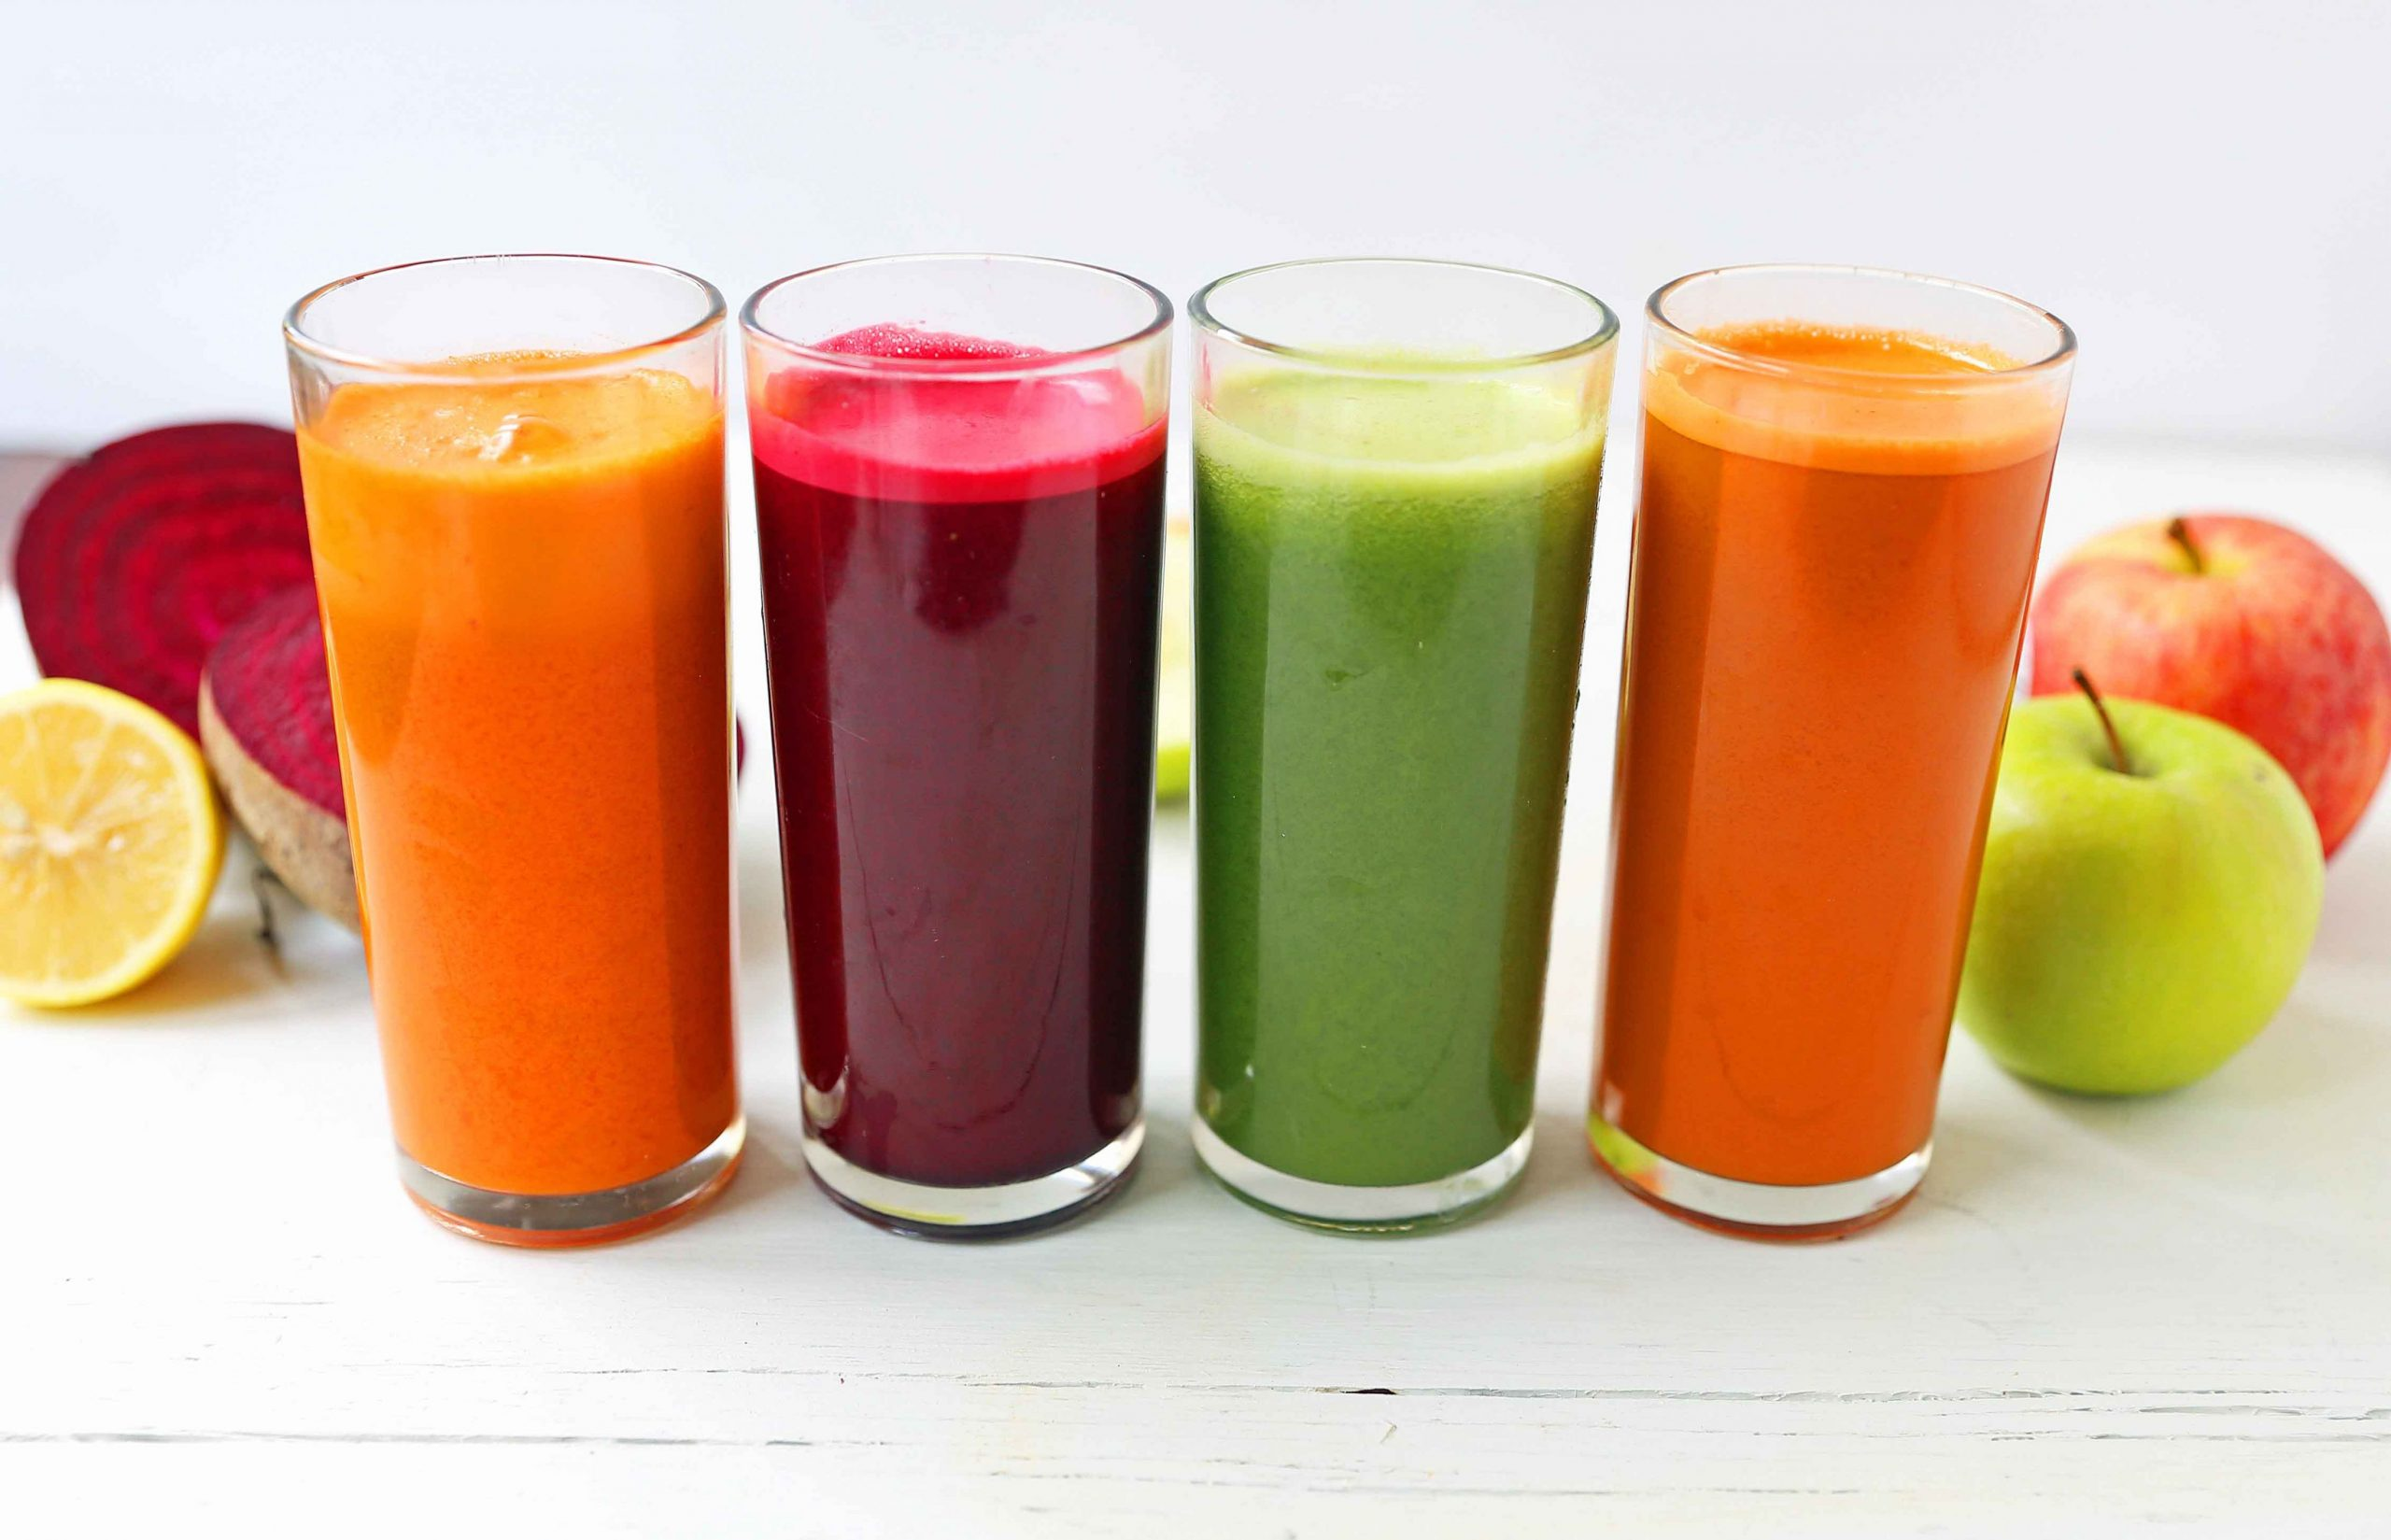 Healthy Juice Cleanse Recipes - Simple Juicer Recipes